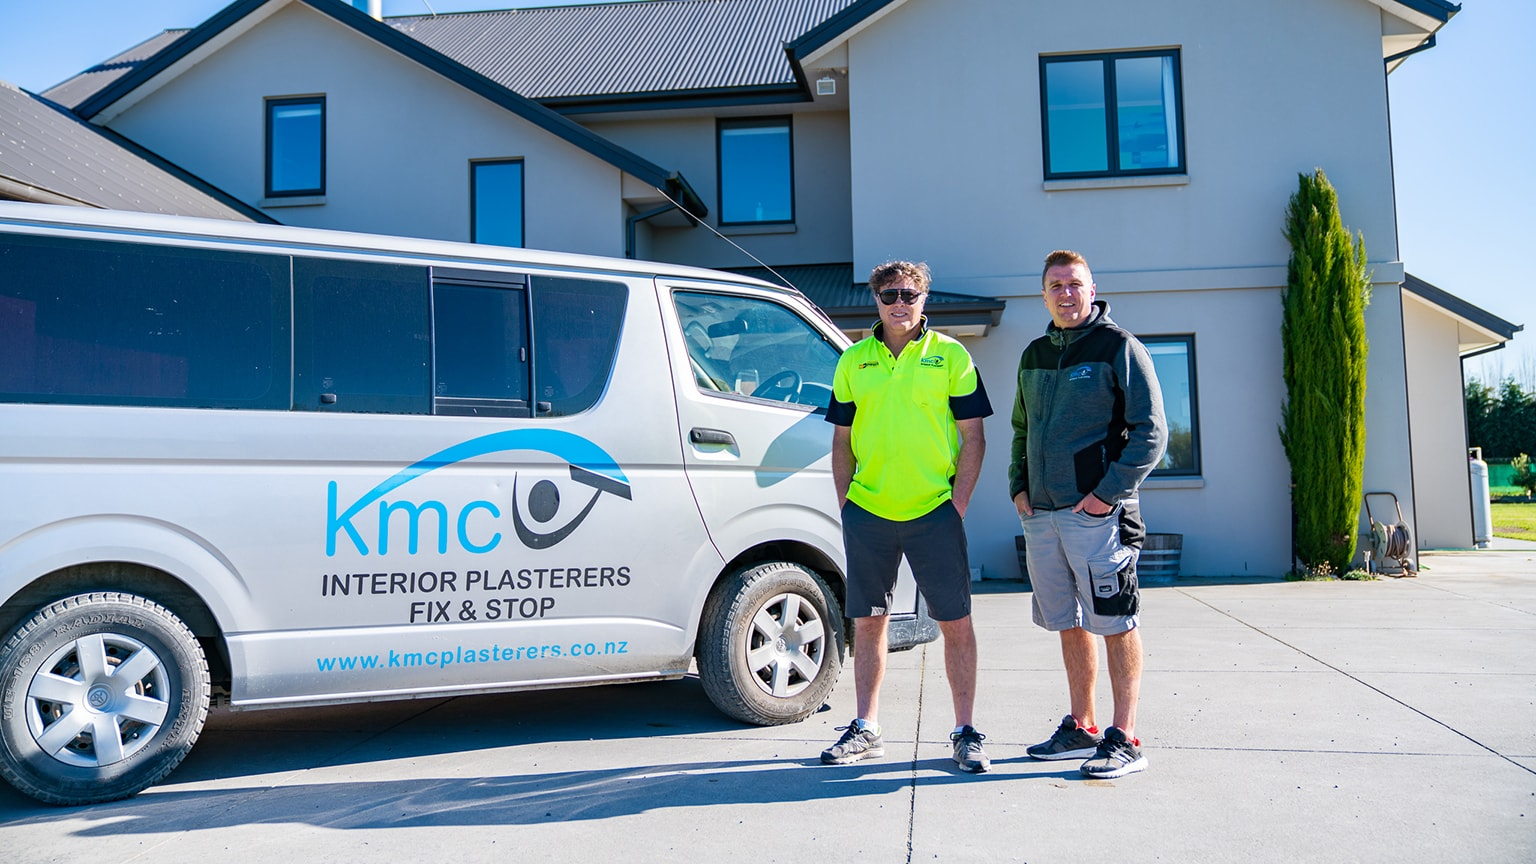 Professional plastering in the North Canterbury region